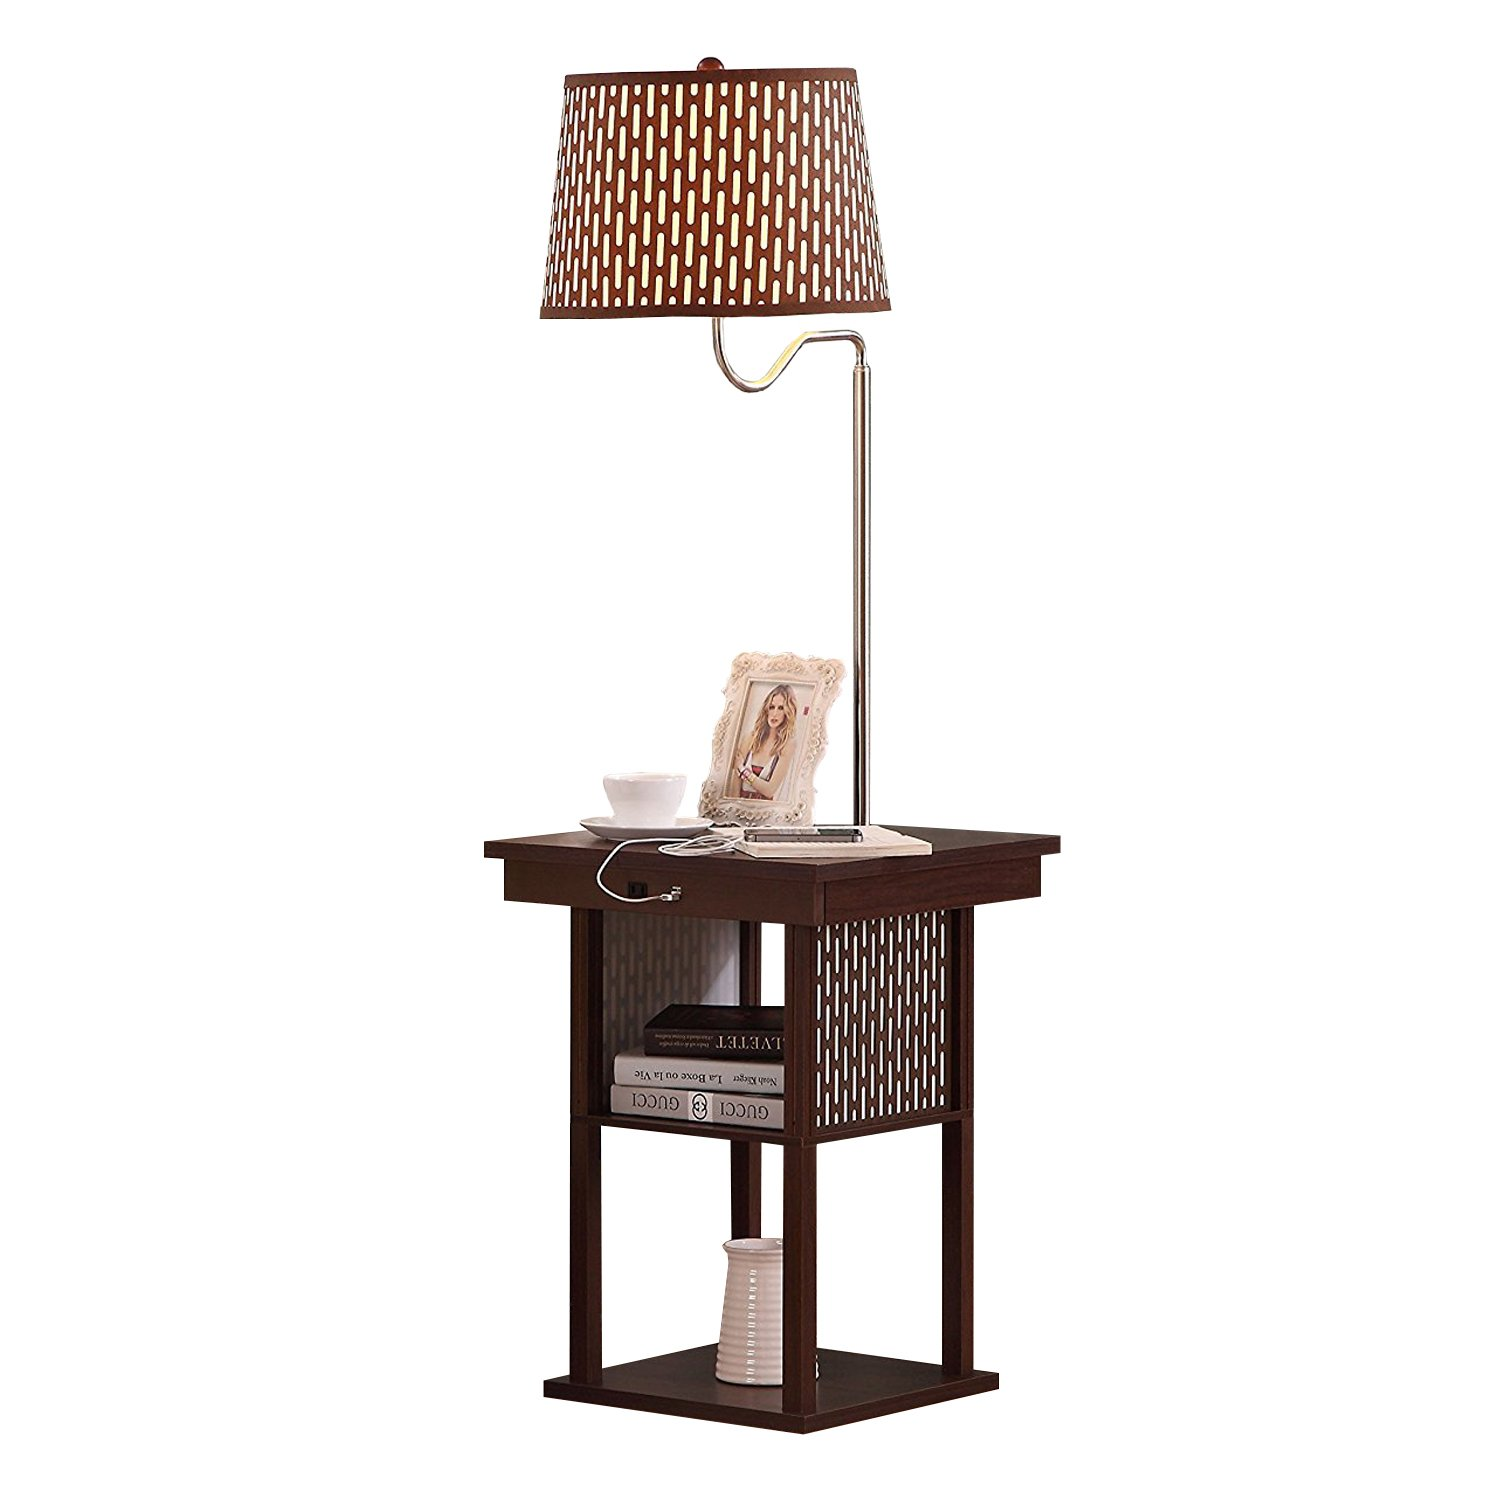 Brightech Madison - Mid Century Modern Nightstand, Shelves & USB Port Combination - Bedside Table with LED Floor Lamp Attached - End Table for Living Room Sofas - Brown by Brightech (Image #1)